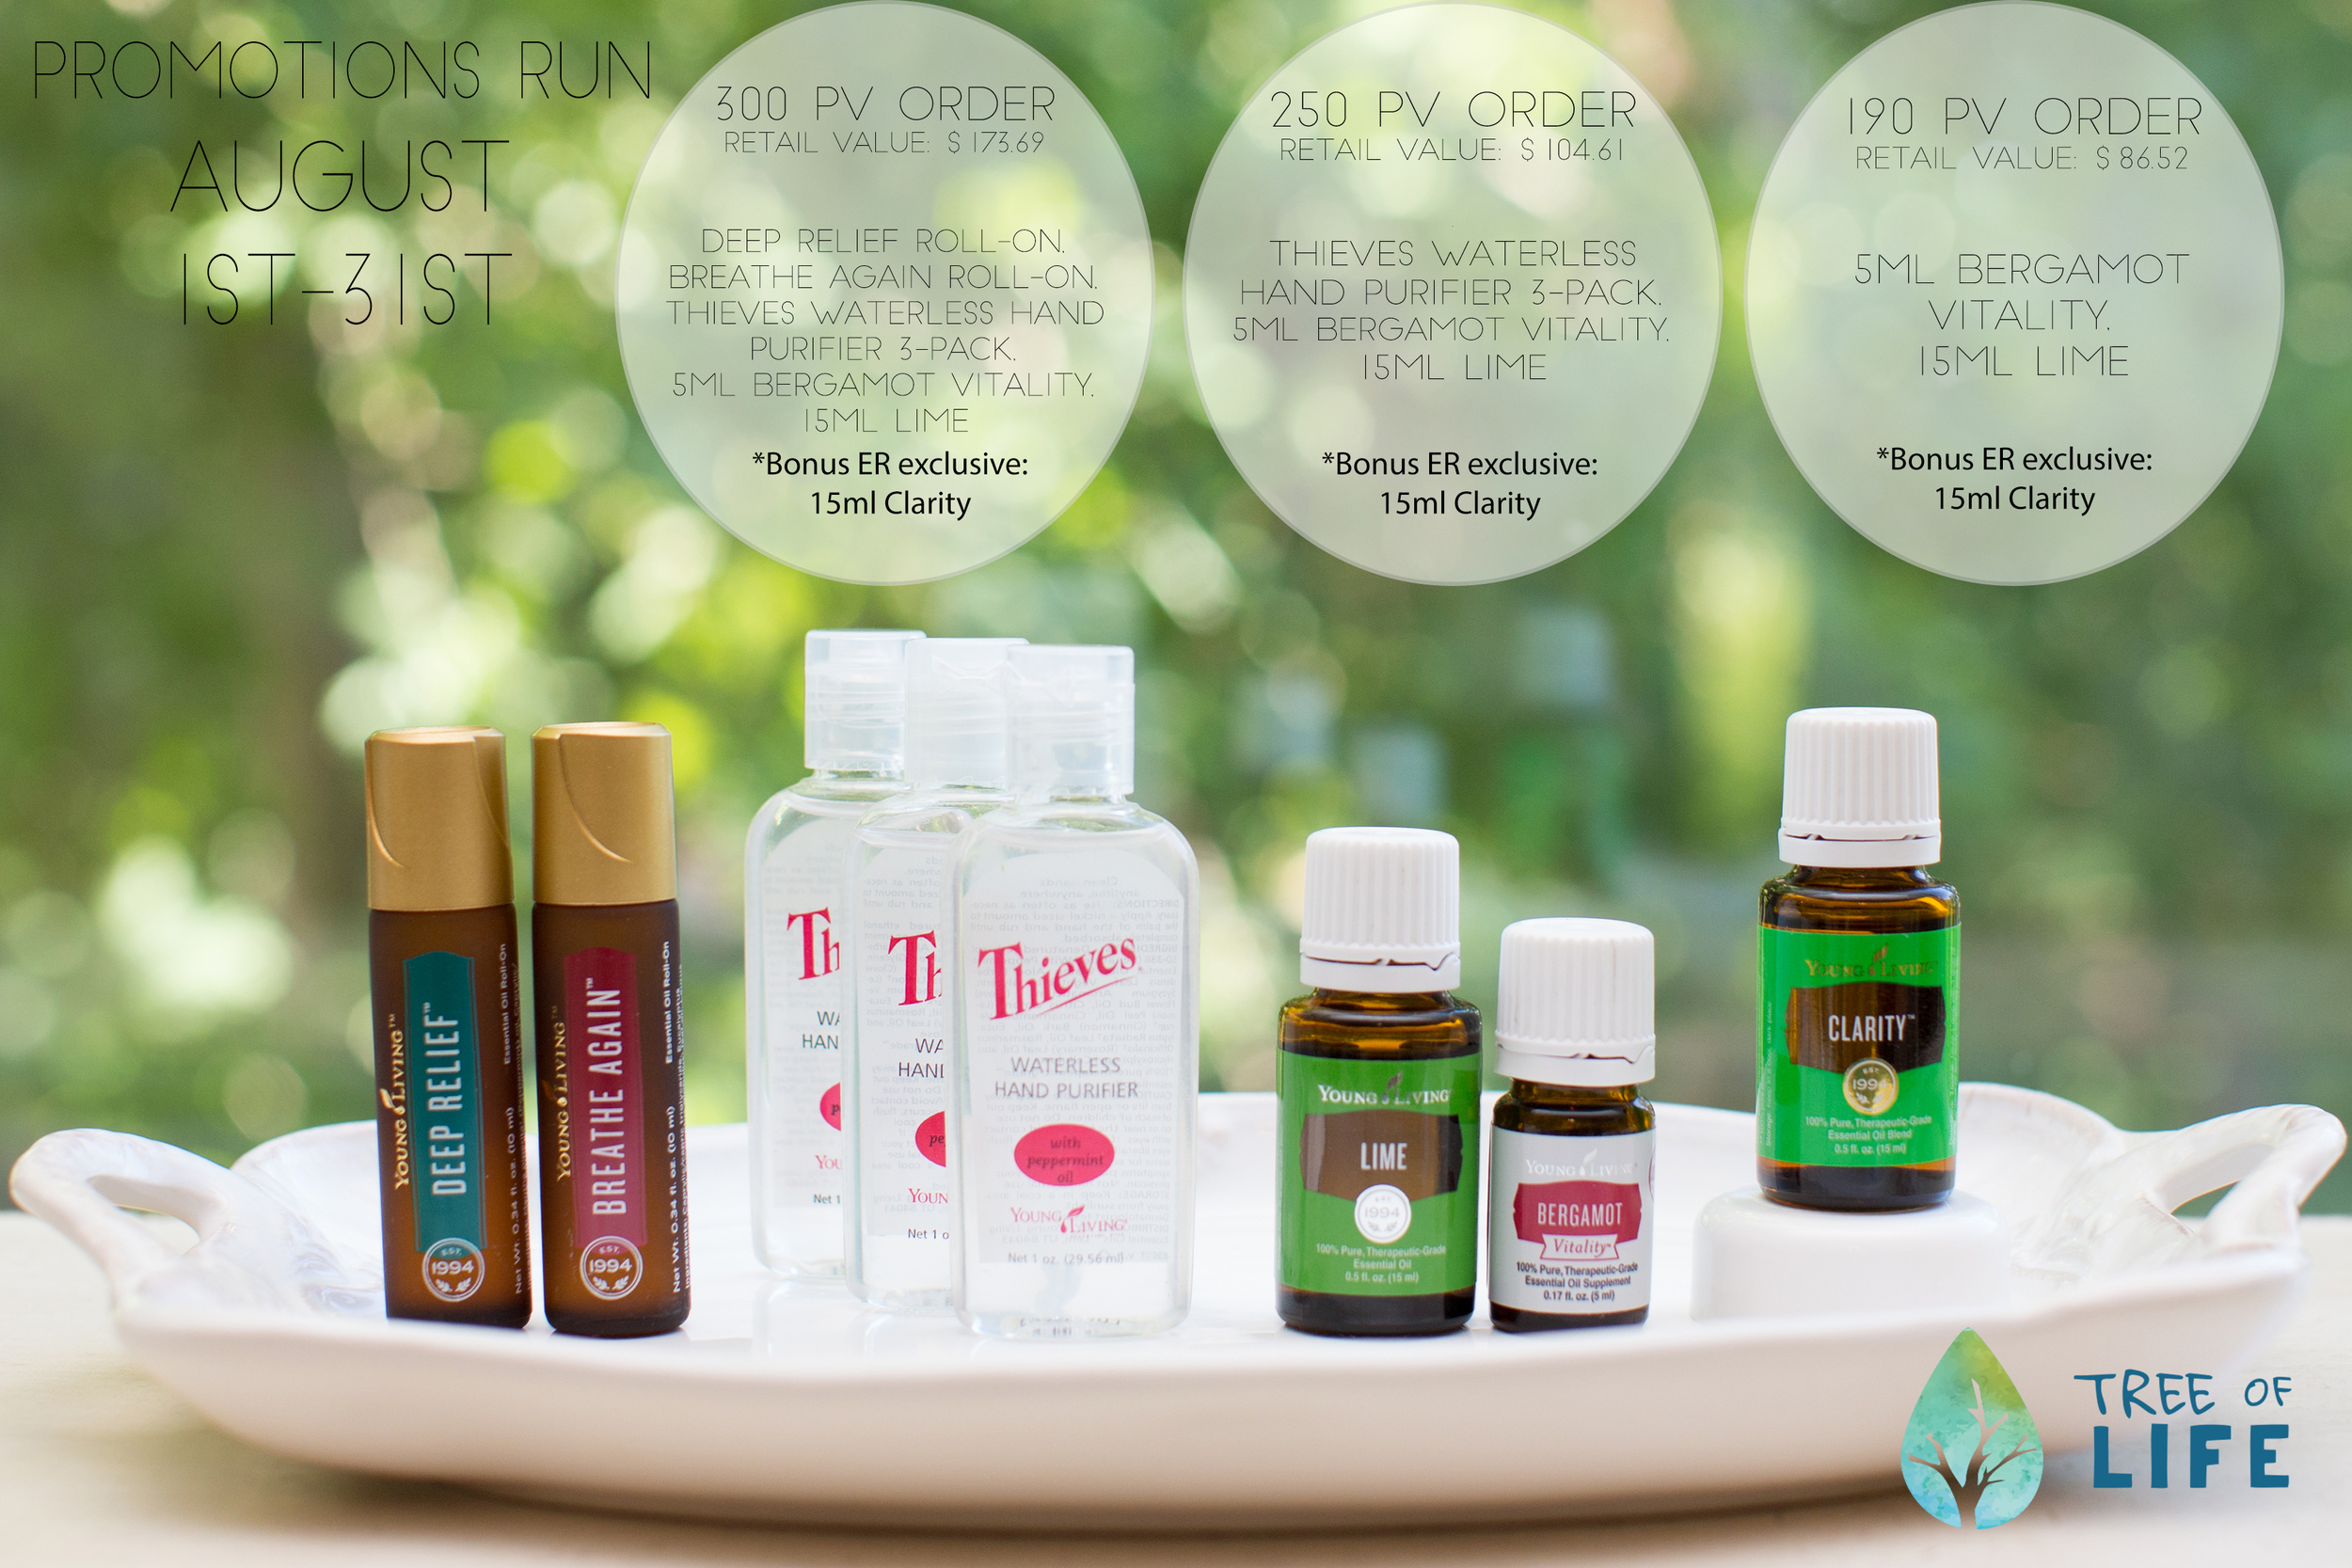 Earn these Young Living back-to-school goodies and fall favorites for free(!) with your qualifying purchase this August.